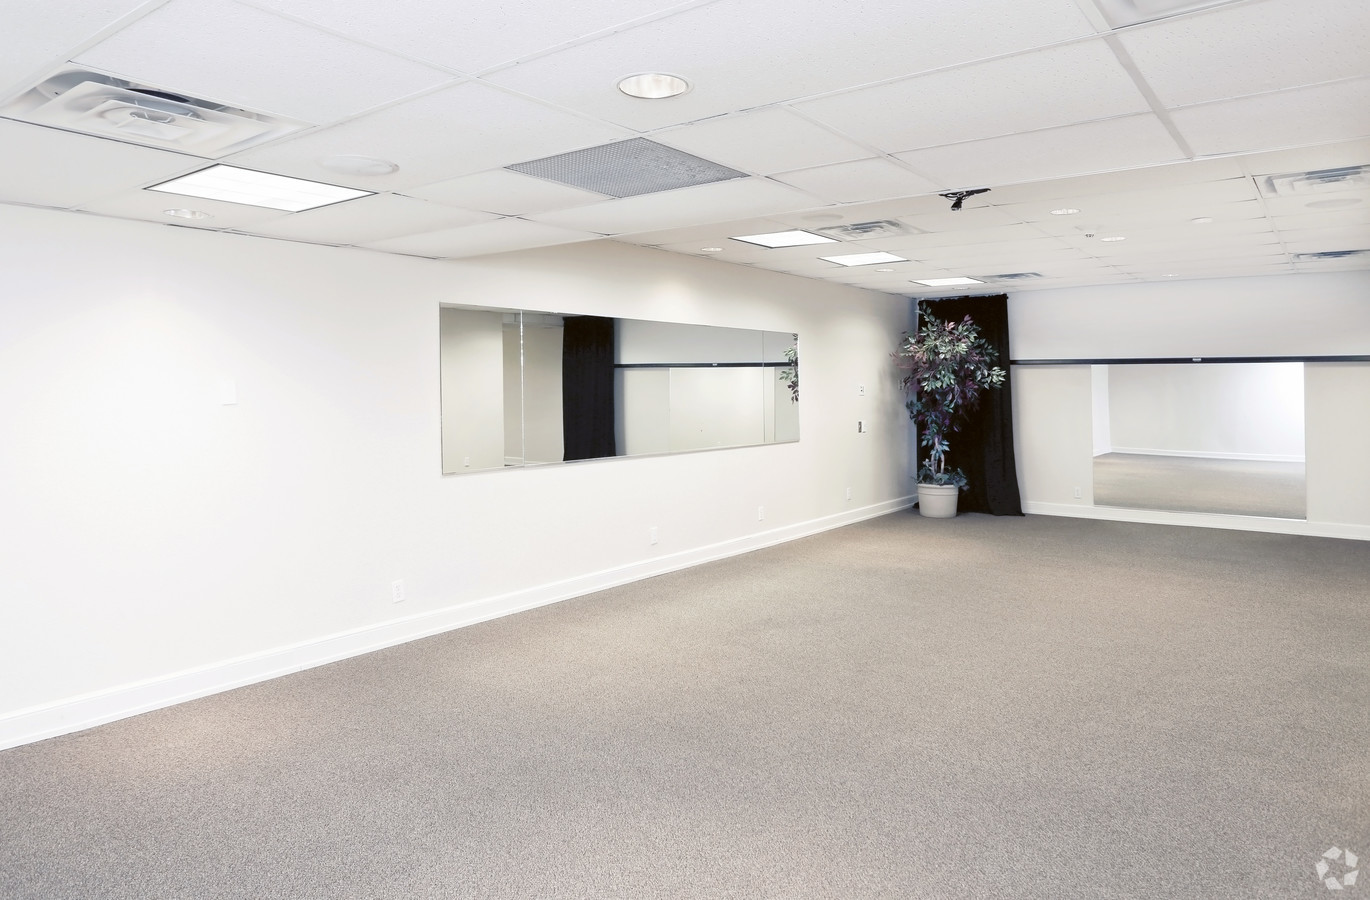 Medical Office Suite in Dallas - Suite 200 - Image 2 of 20